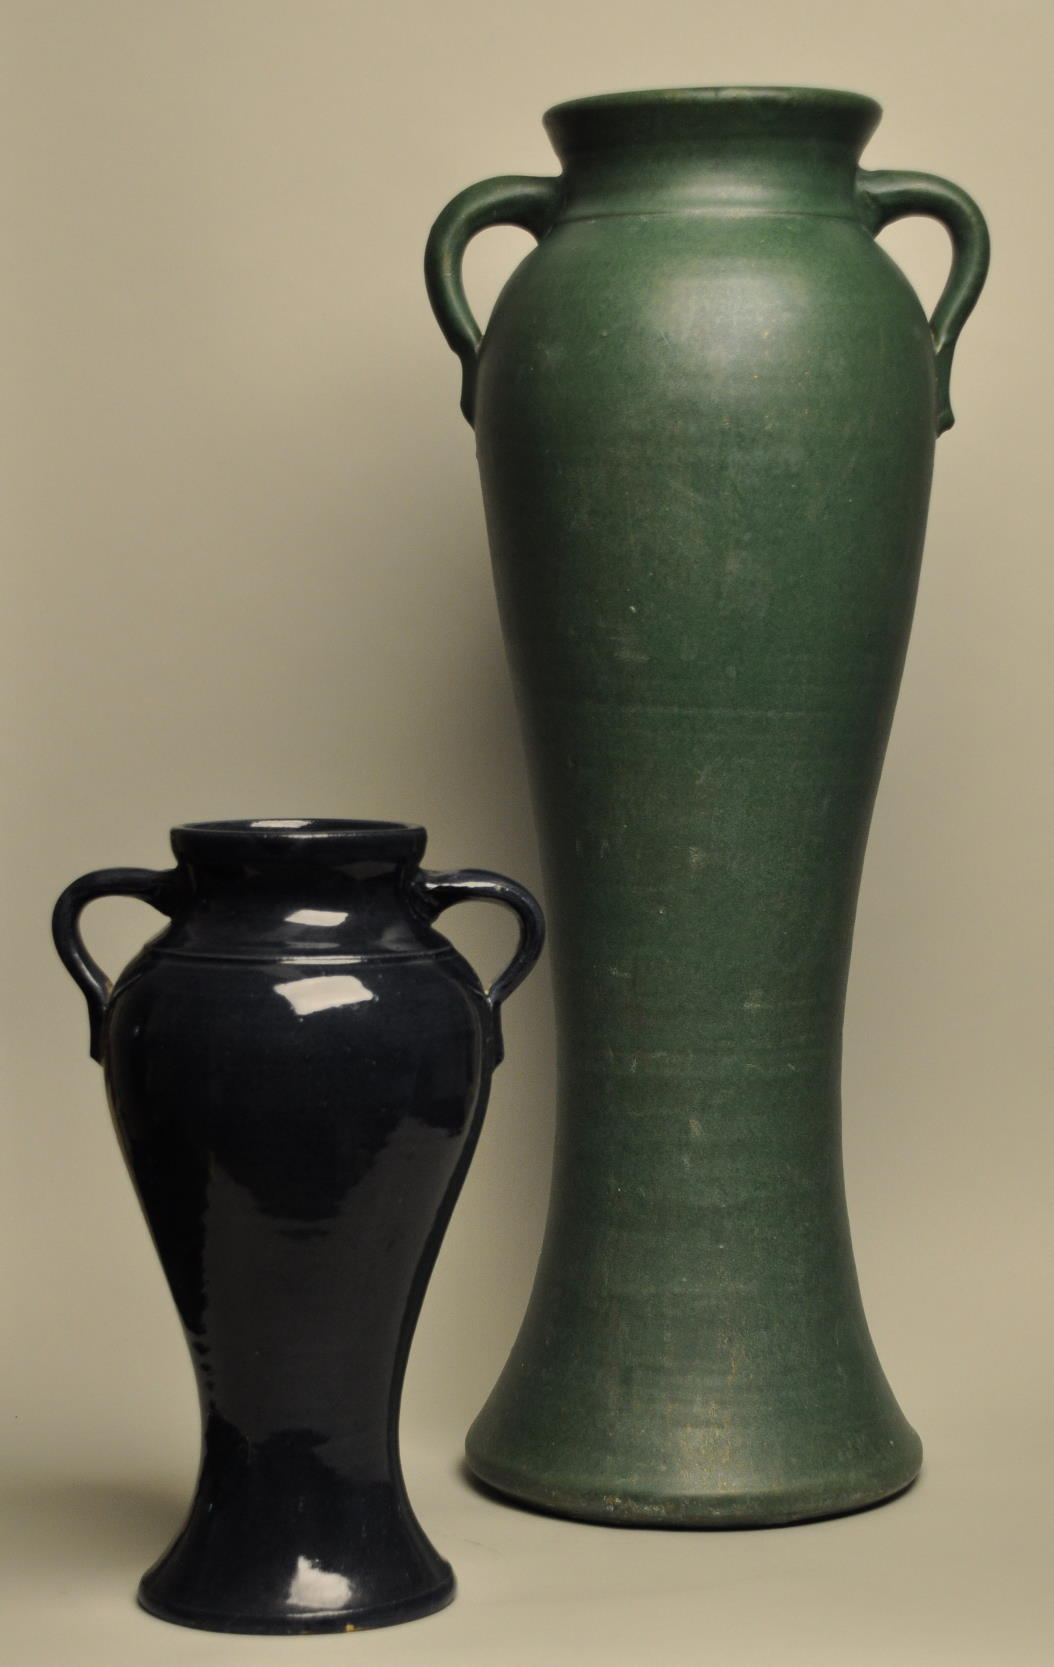 Bauer pottery wikipedia reviewsmspy